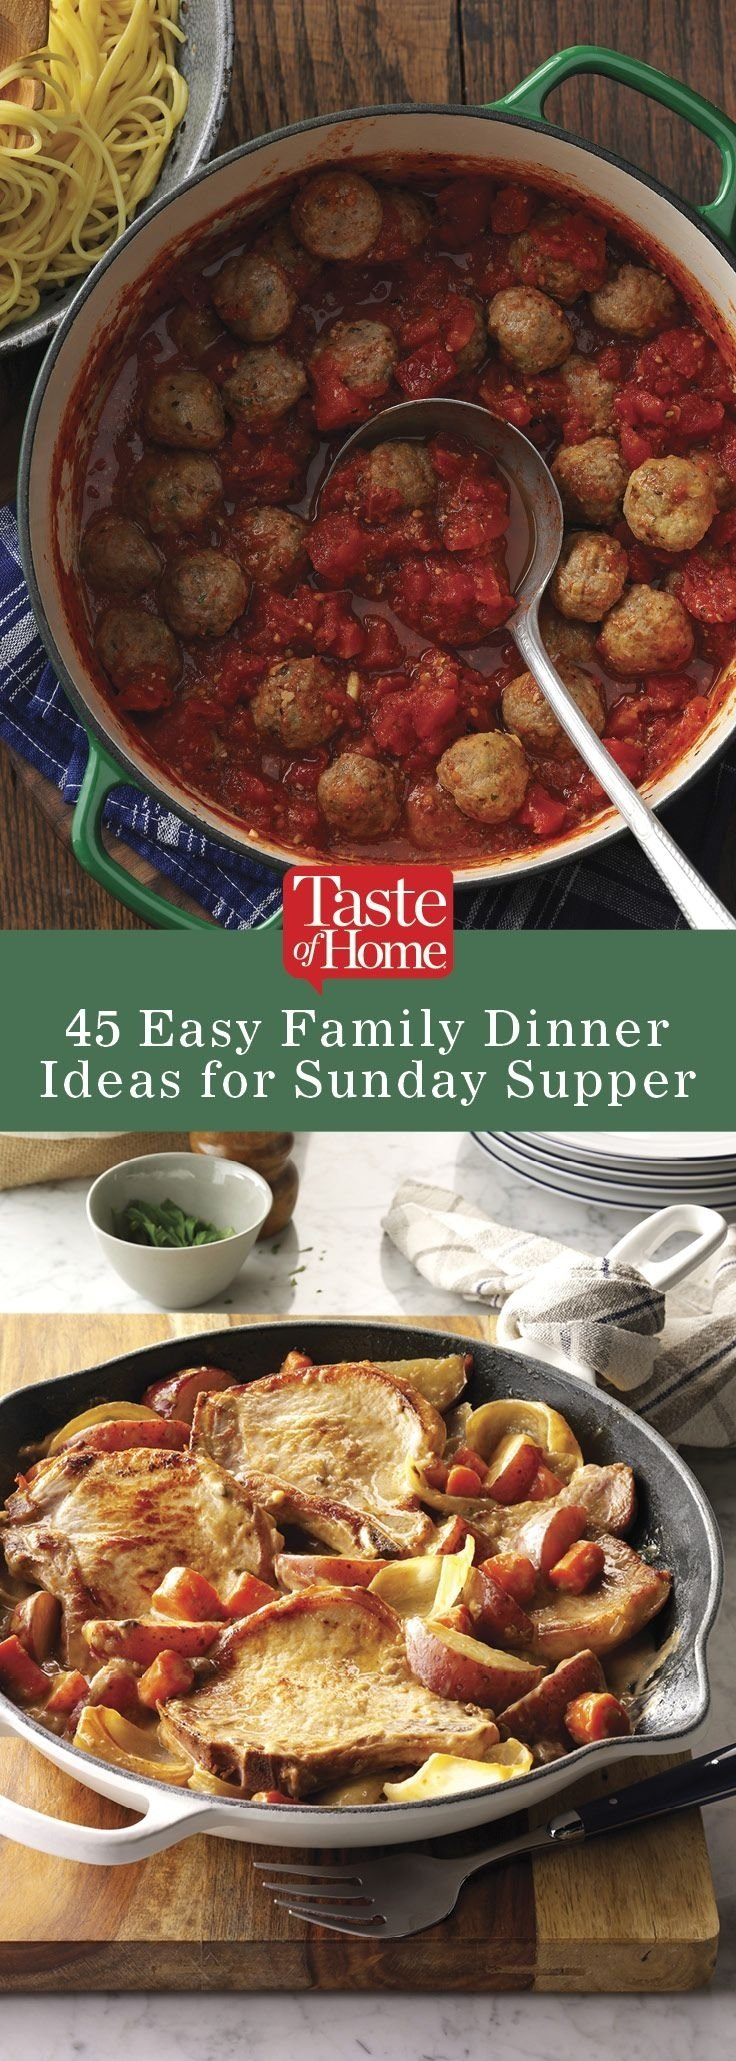 10 Fashionable Sunday Dinner Ideas For Family 78 Best Dinners Images Cooking Recipes